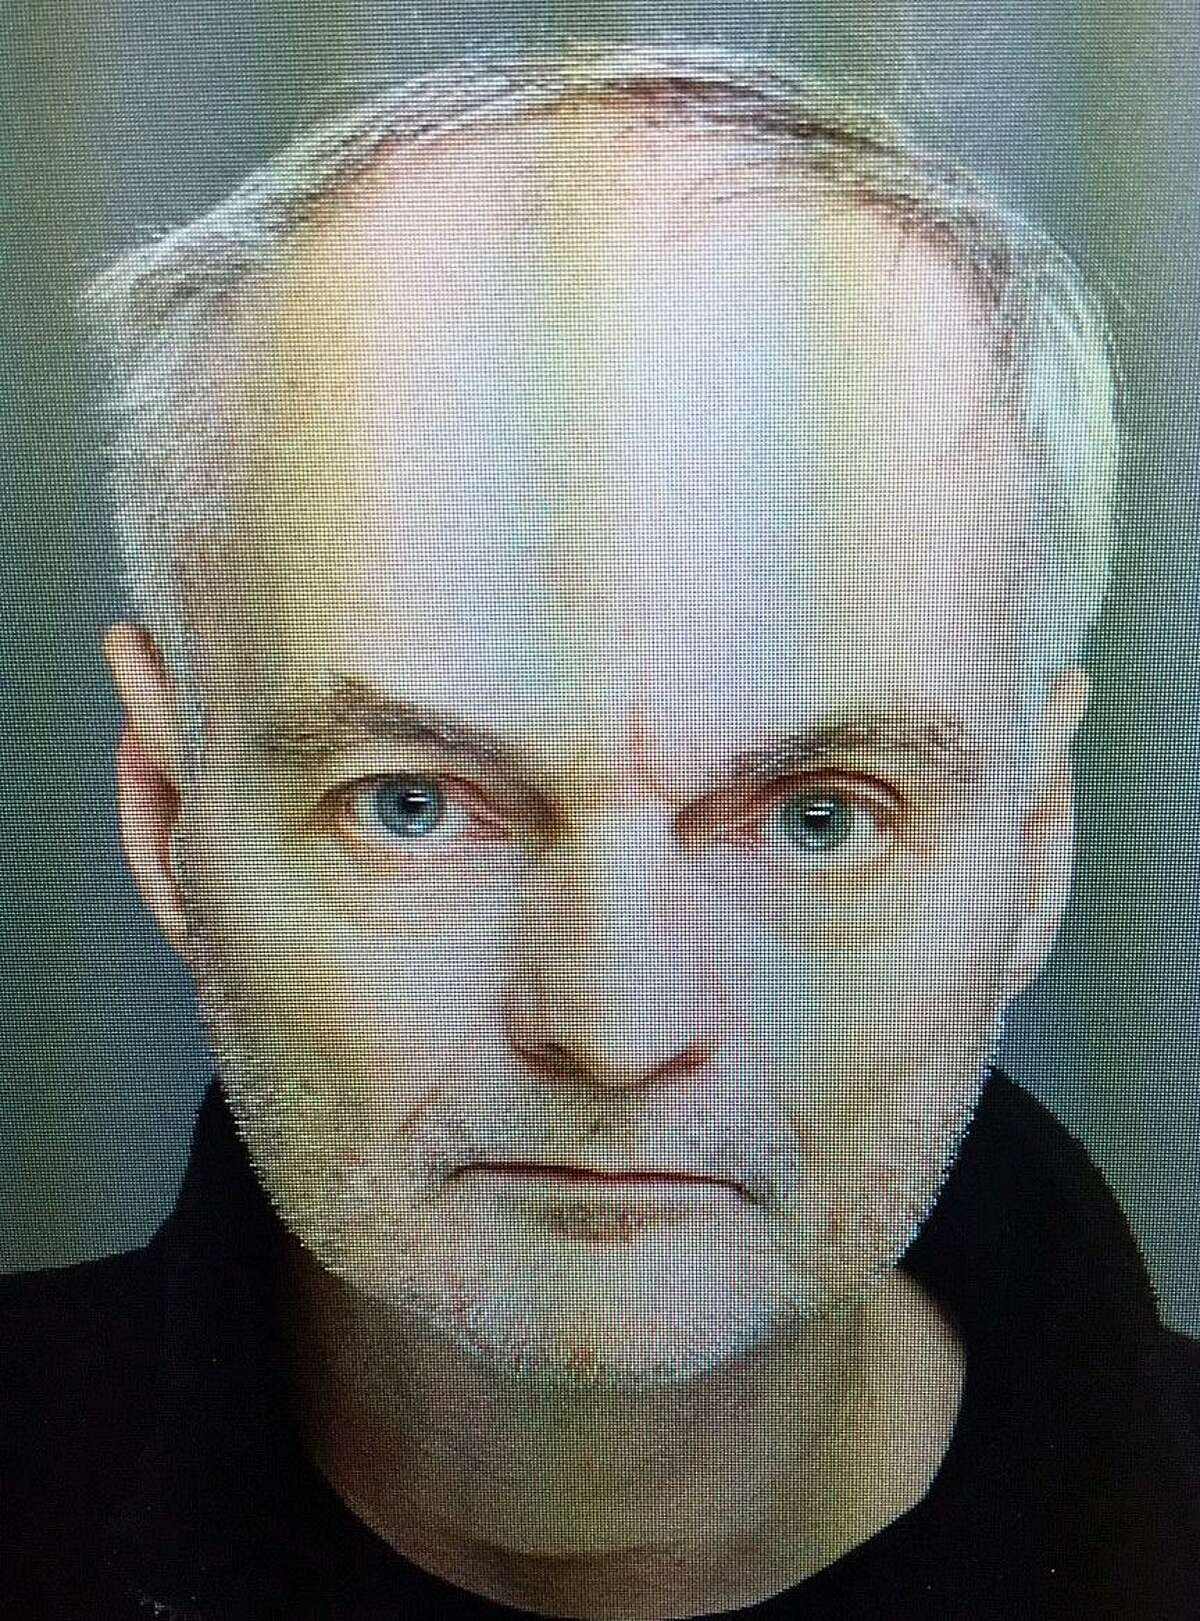 Bridgeport Police Lt. Stephen Shuck was arrested on Tuesday, Feb. 13, 2018 at his Stratford home and charged with first-degree larceny. If convicted of the charge, Shuck, who earned $128,972 including $23,737 in overtime in 2017, could be sentenced to 20 years in prison and lose his pension, which at this point would be 75 percent of his pay.